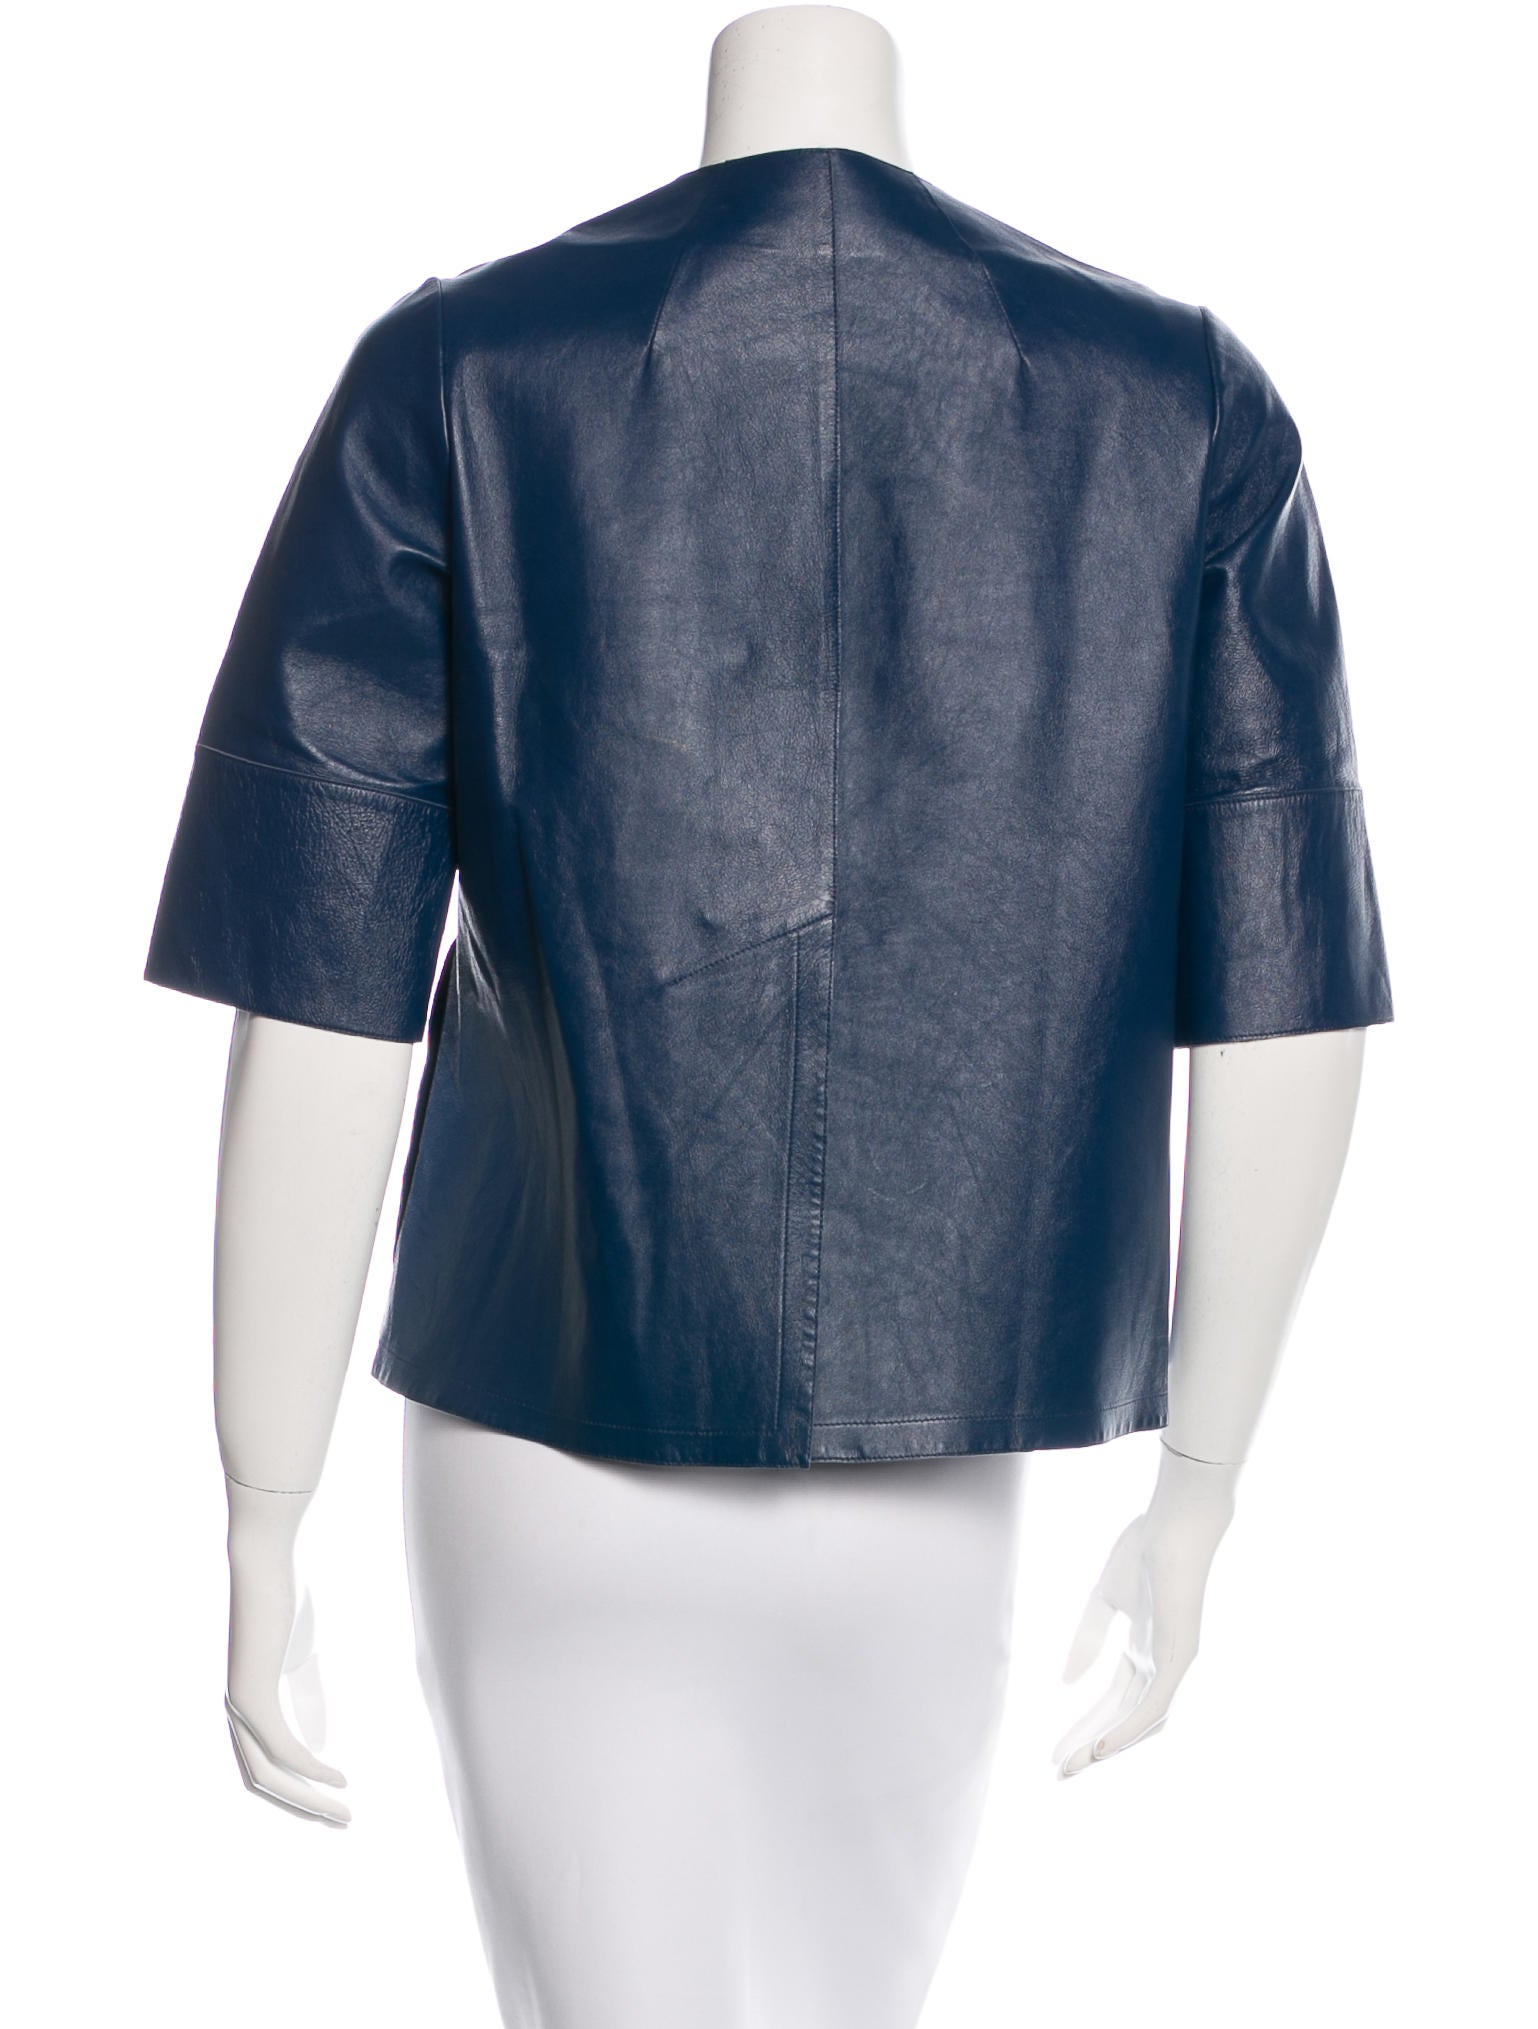 3, results for ladies short sleeve jackets Save ladies short sleeve jackets to get e-mail alerts and updates on your eBay Feed. Unfollow ladies short sleeve jackets to .